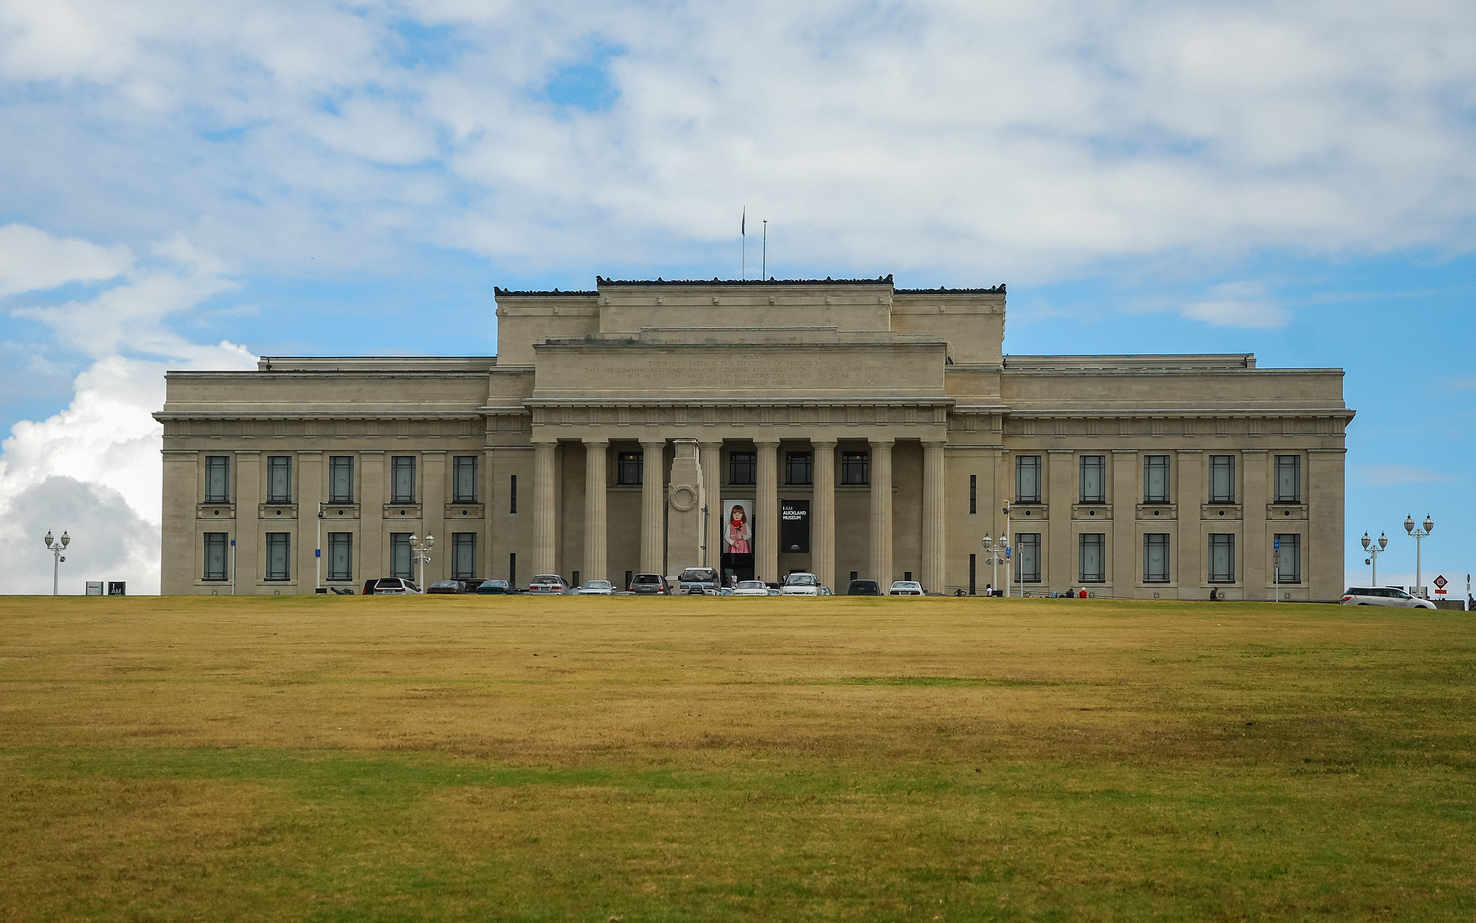 Large auckland war memorial